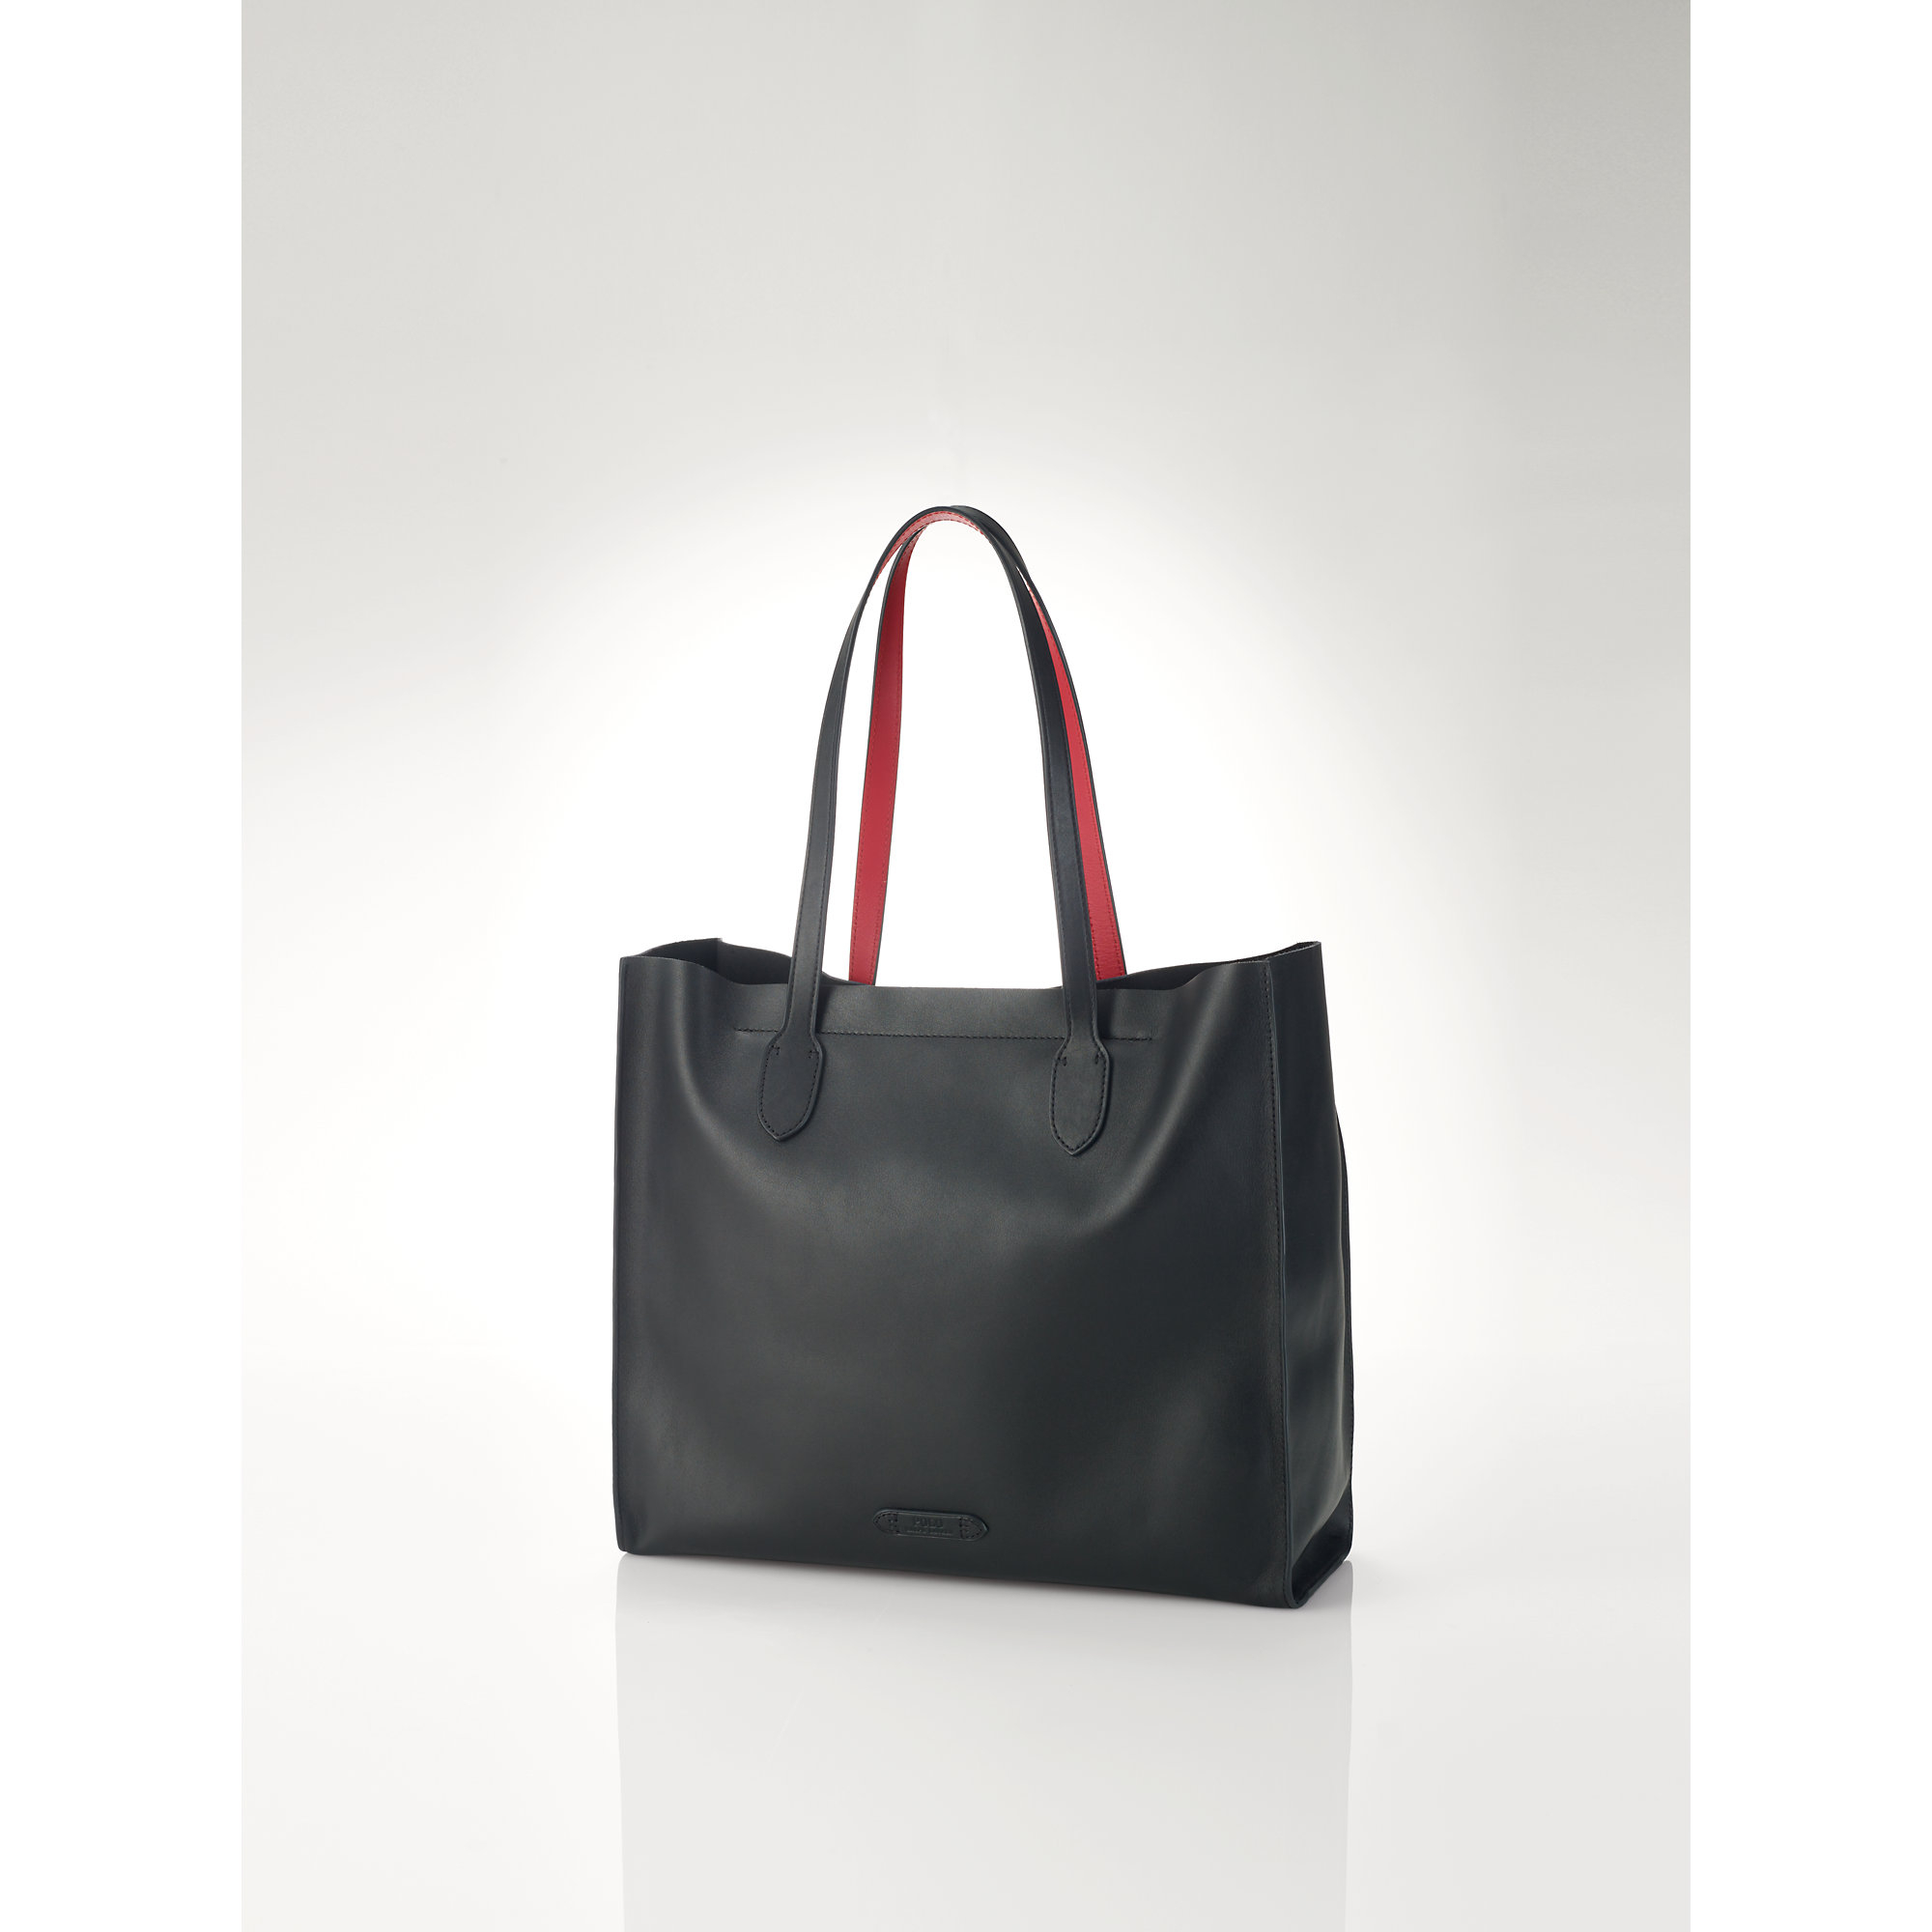 94dd8d0068f1 Lyst - Polo Ralph Lauren Smooth Leather Tote in Black